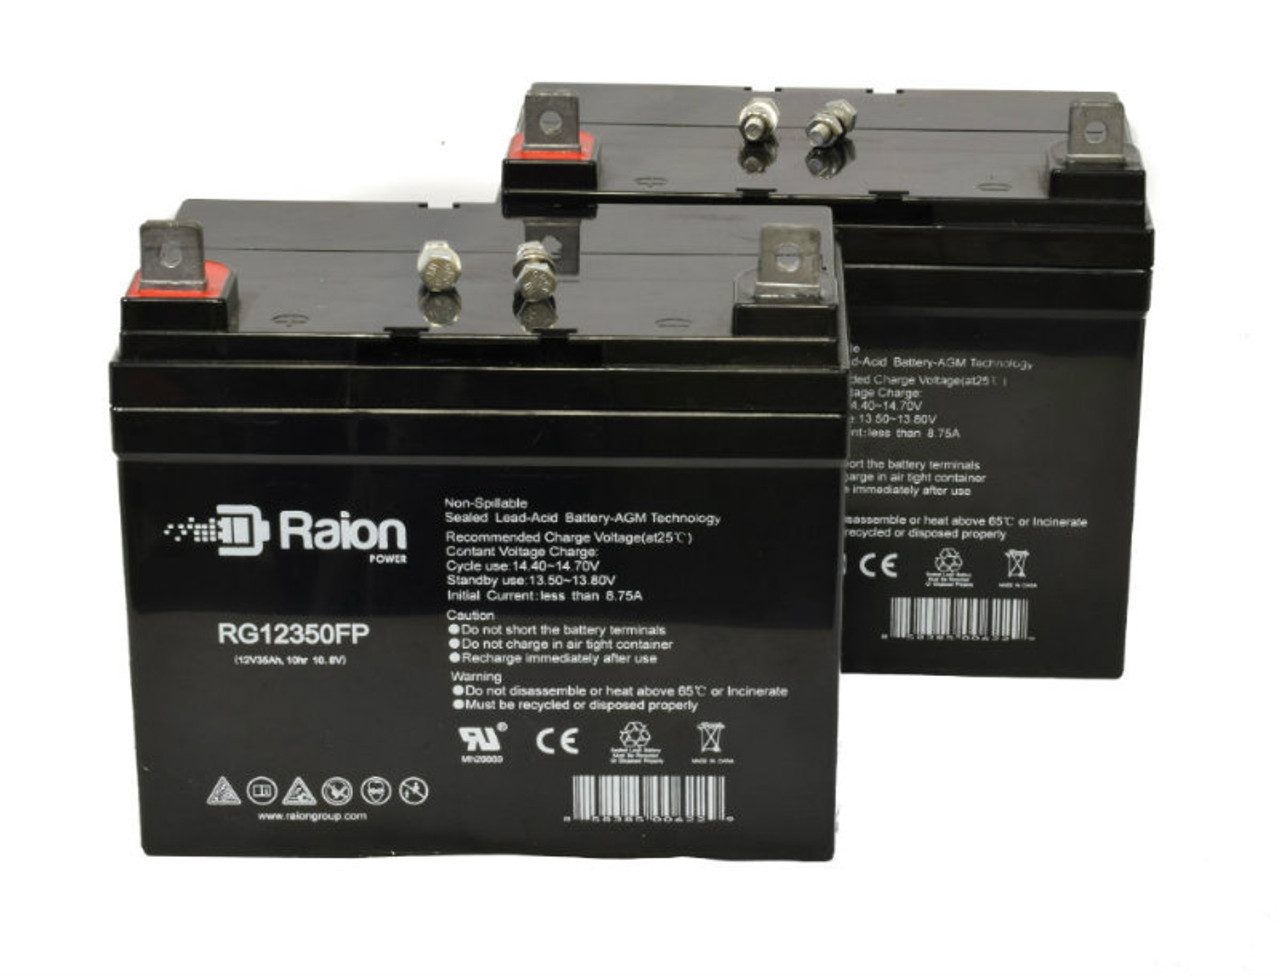 Raion Power RG12350FP Replacement Wheelchair Battery For Invacare Runabout (2 Pack)